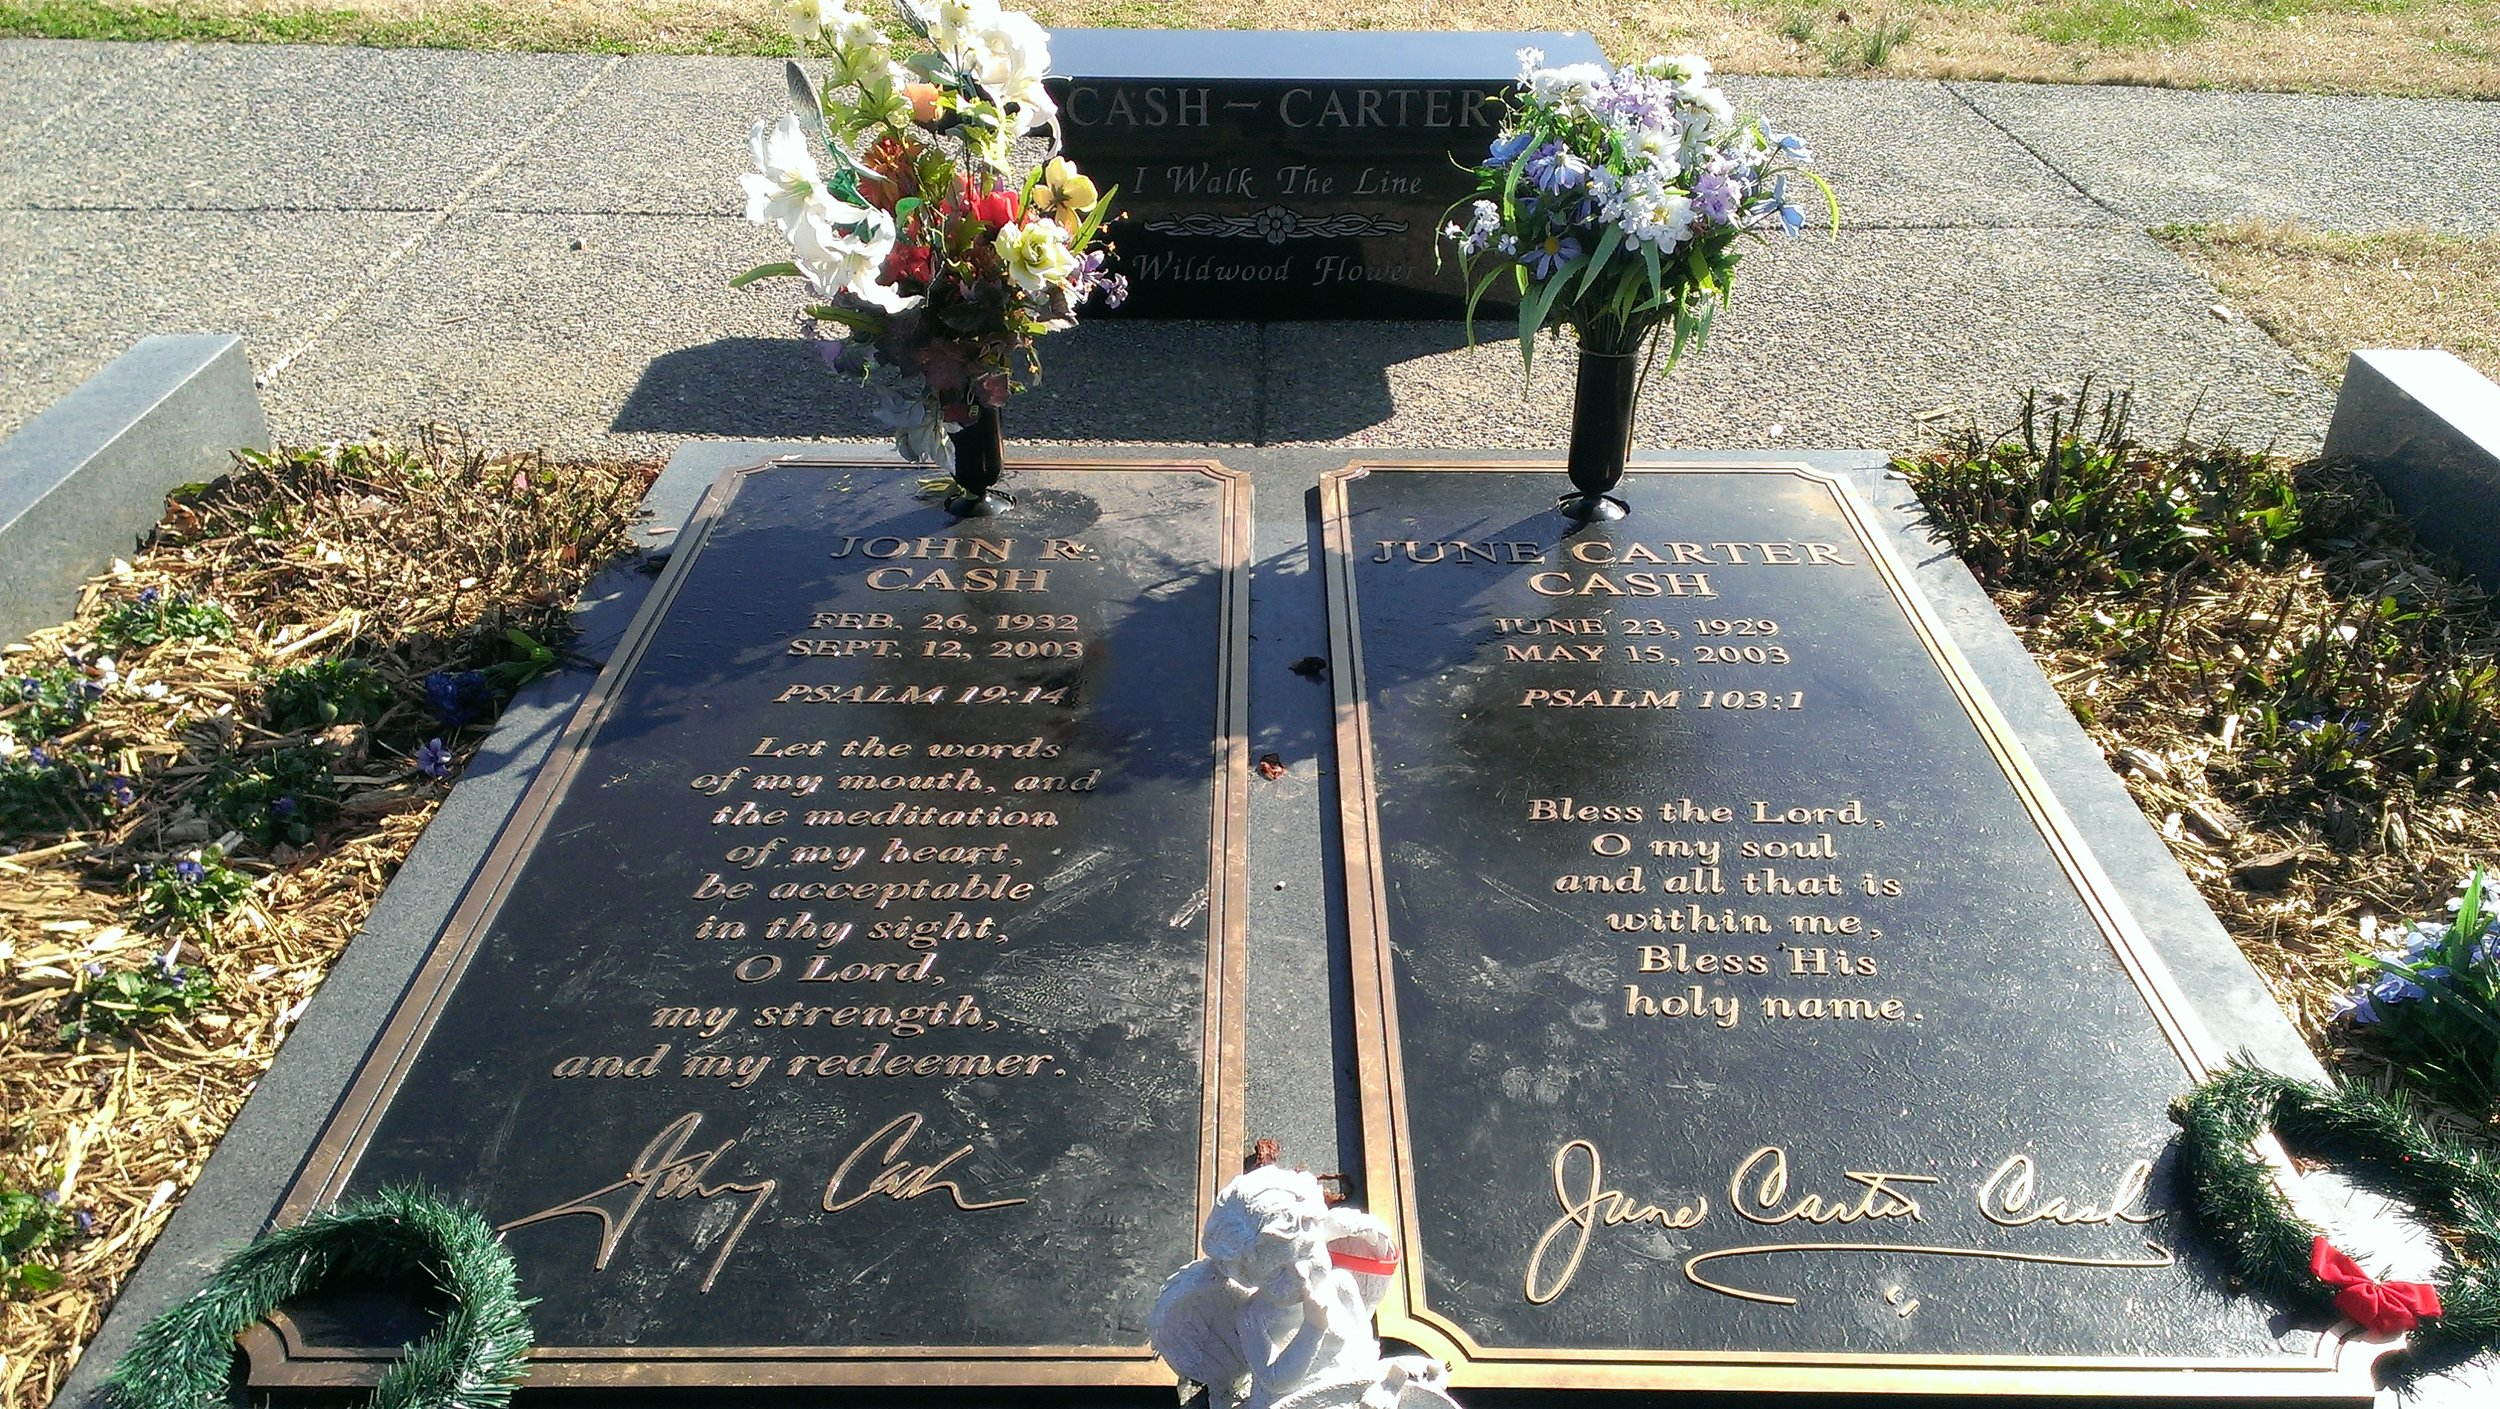 Love was good to him: Johnny Cash, set to rest next to his beloved June Carter Cash